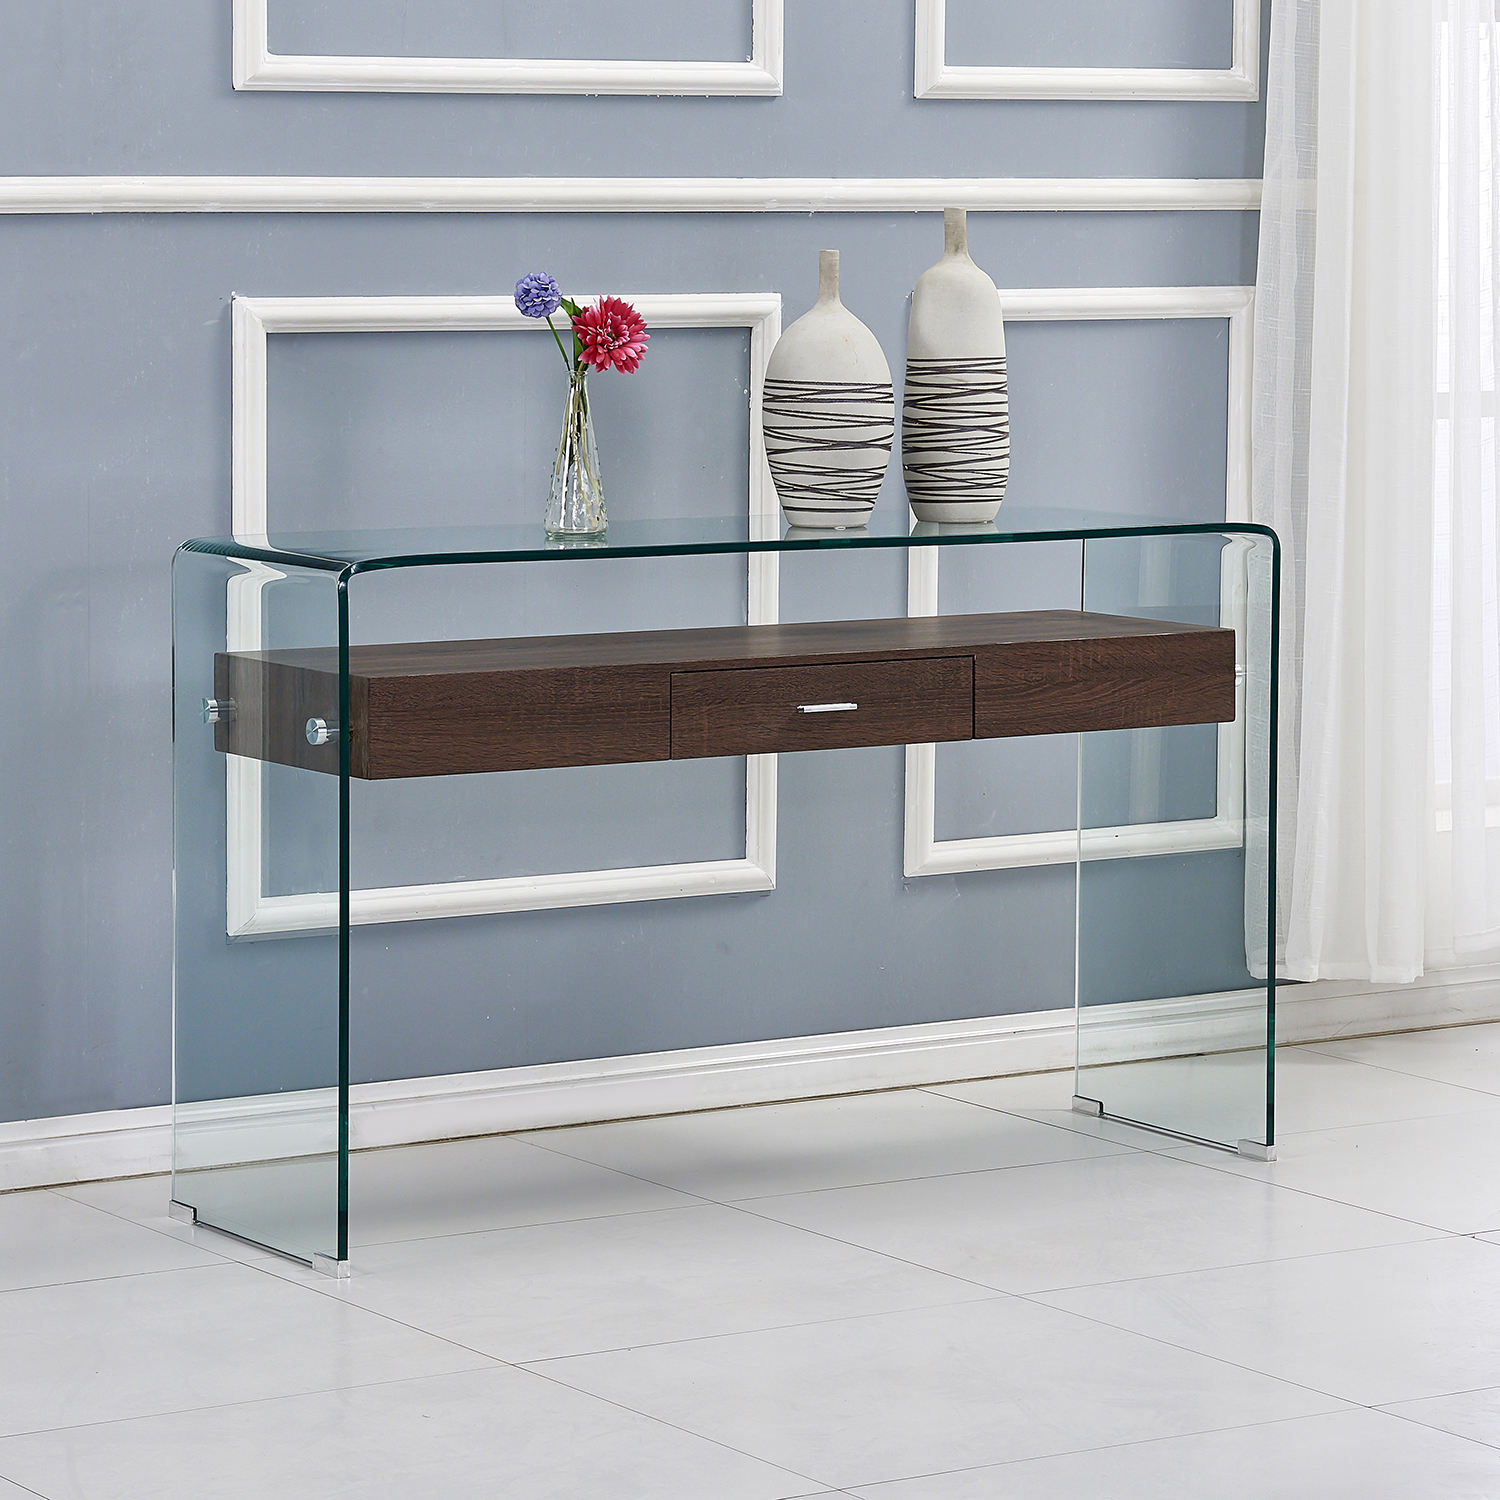 Acrylic Console Table Set Wood Console Table Drawer Entryway Table Hallway Console